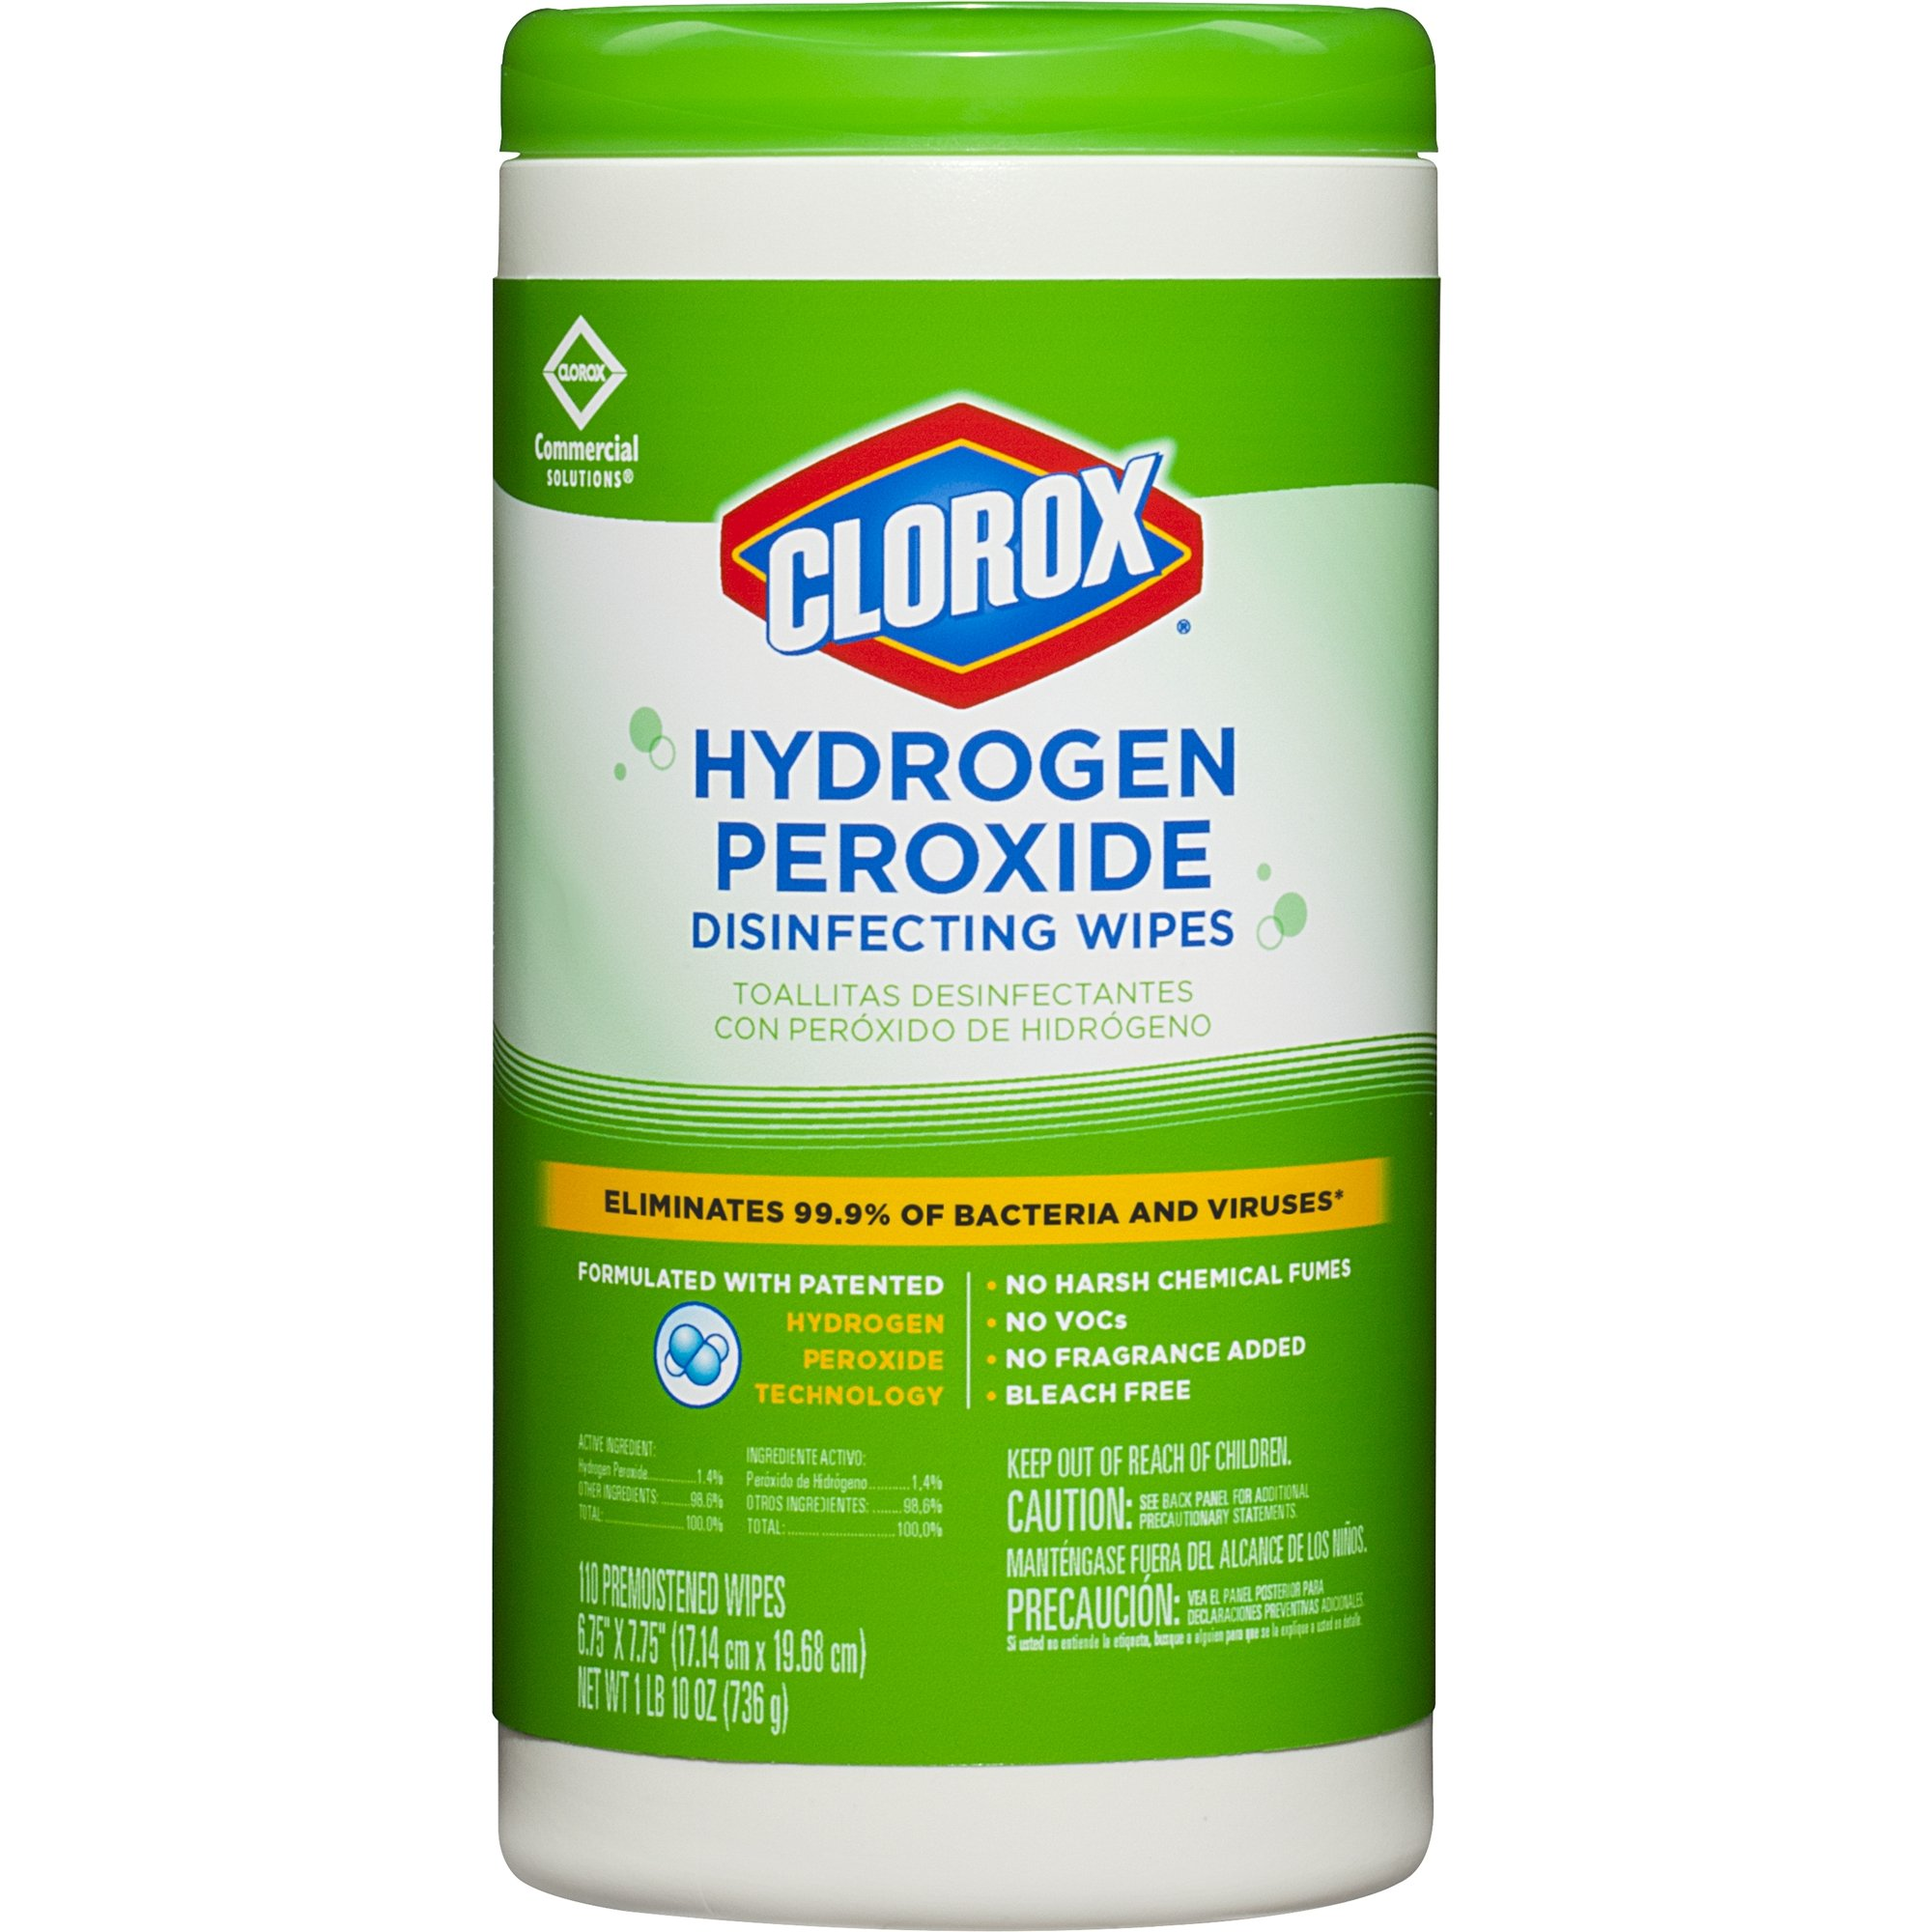 Clorox Commercial Solutions Hydrogen Peroxide Disinfecting Wipes, 110 Count Canister